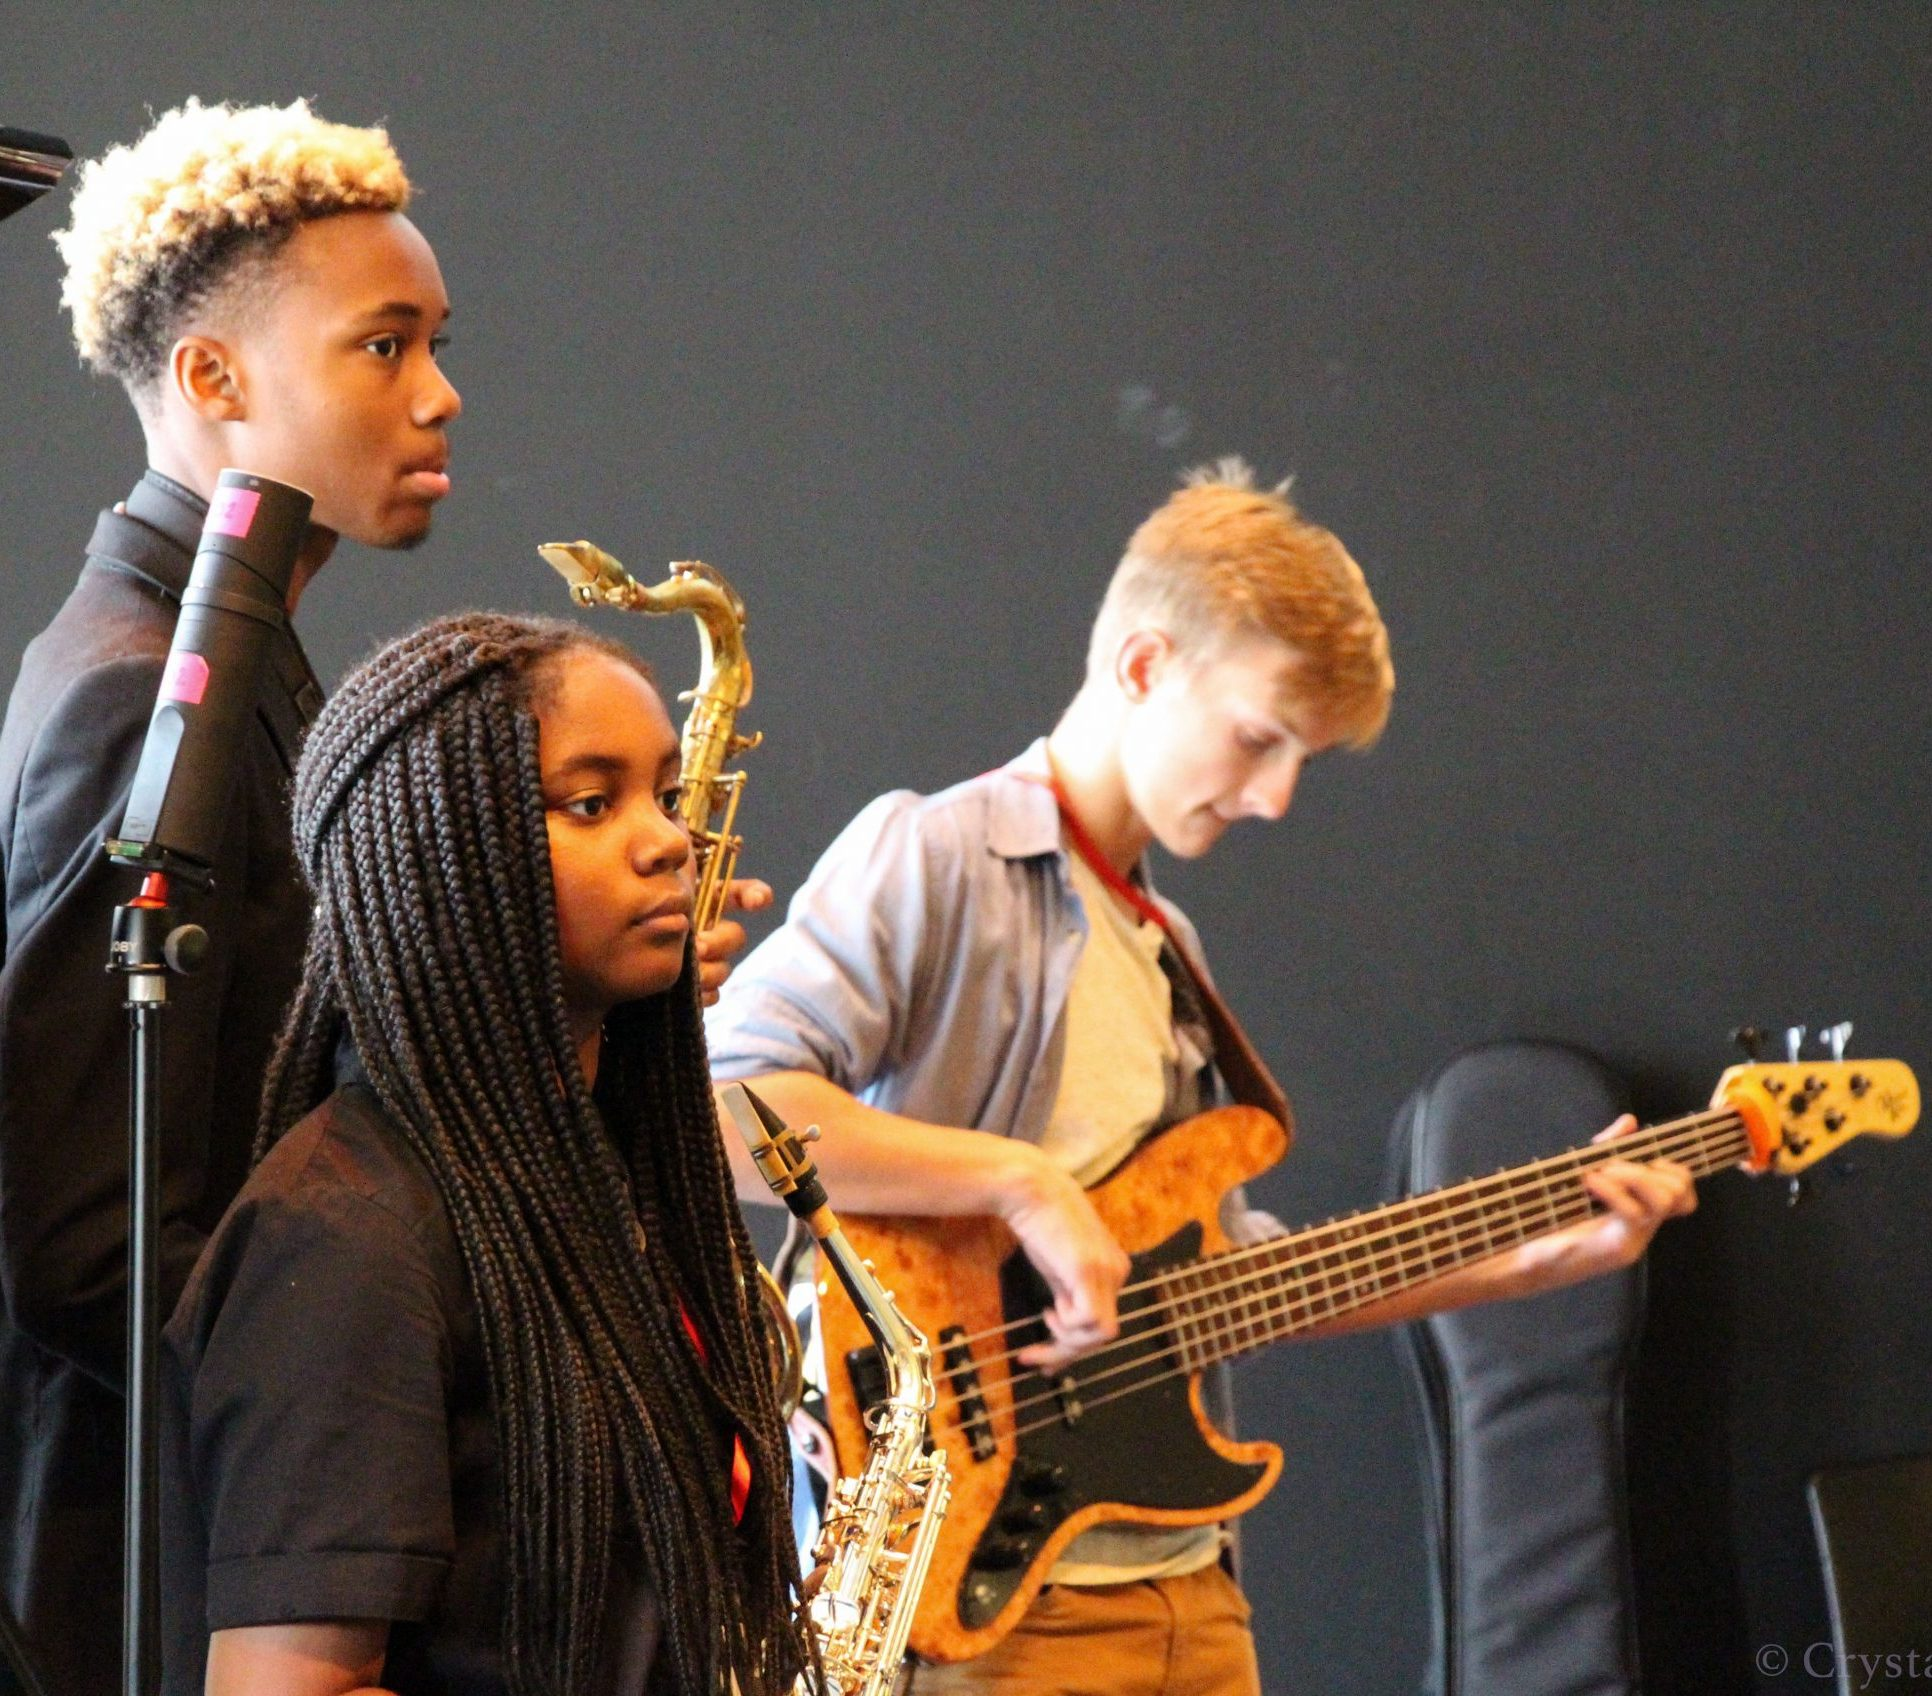 Young players participate in the student jam at the 2019 Jazz Summit